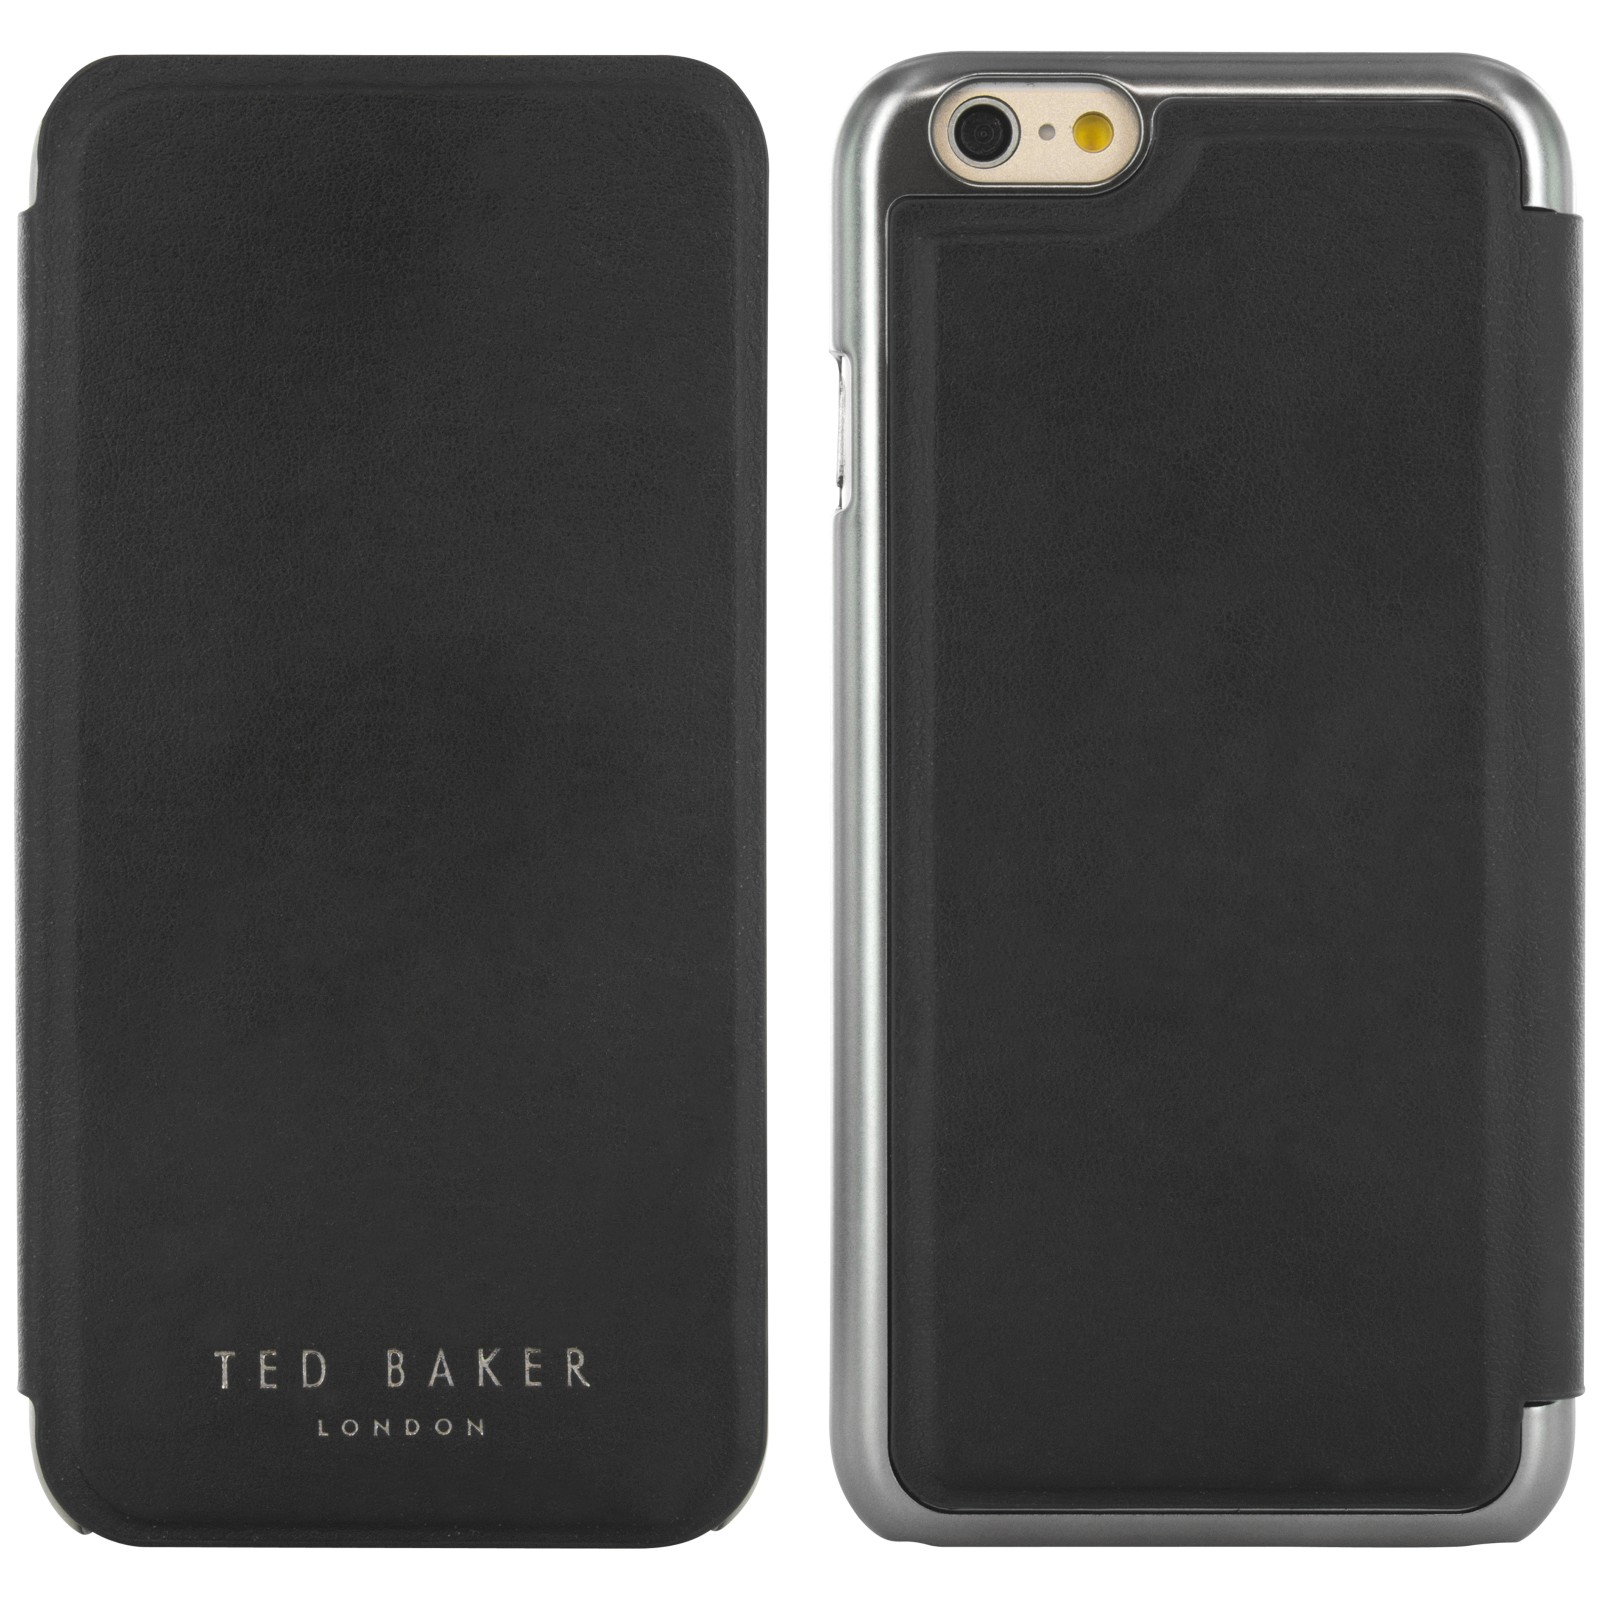 Ted Baker Case for iPhone 6